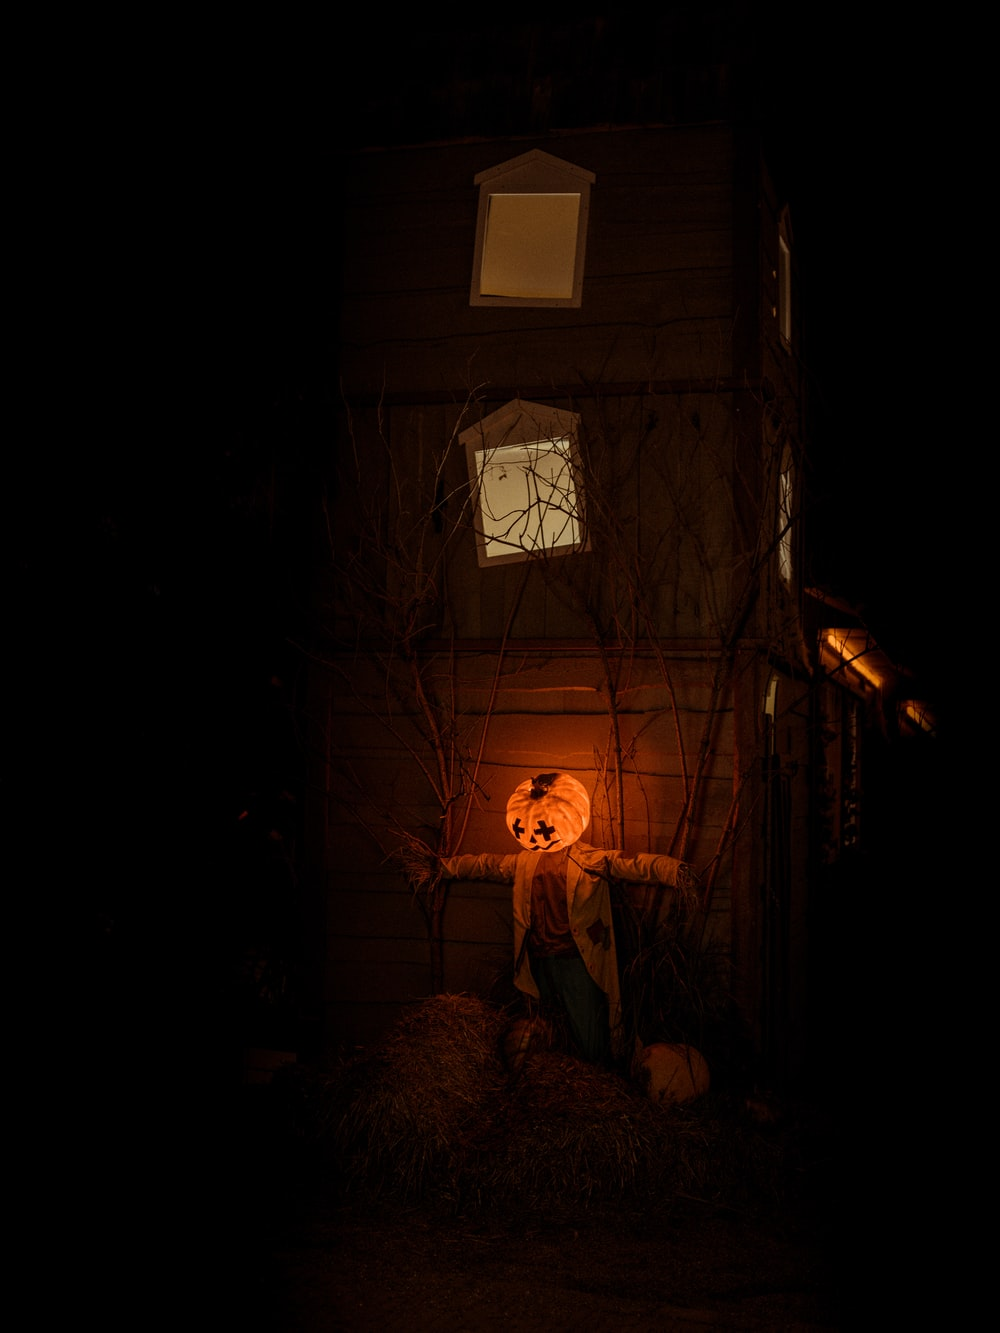 lit Jack-o-lantern decor